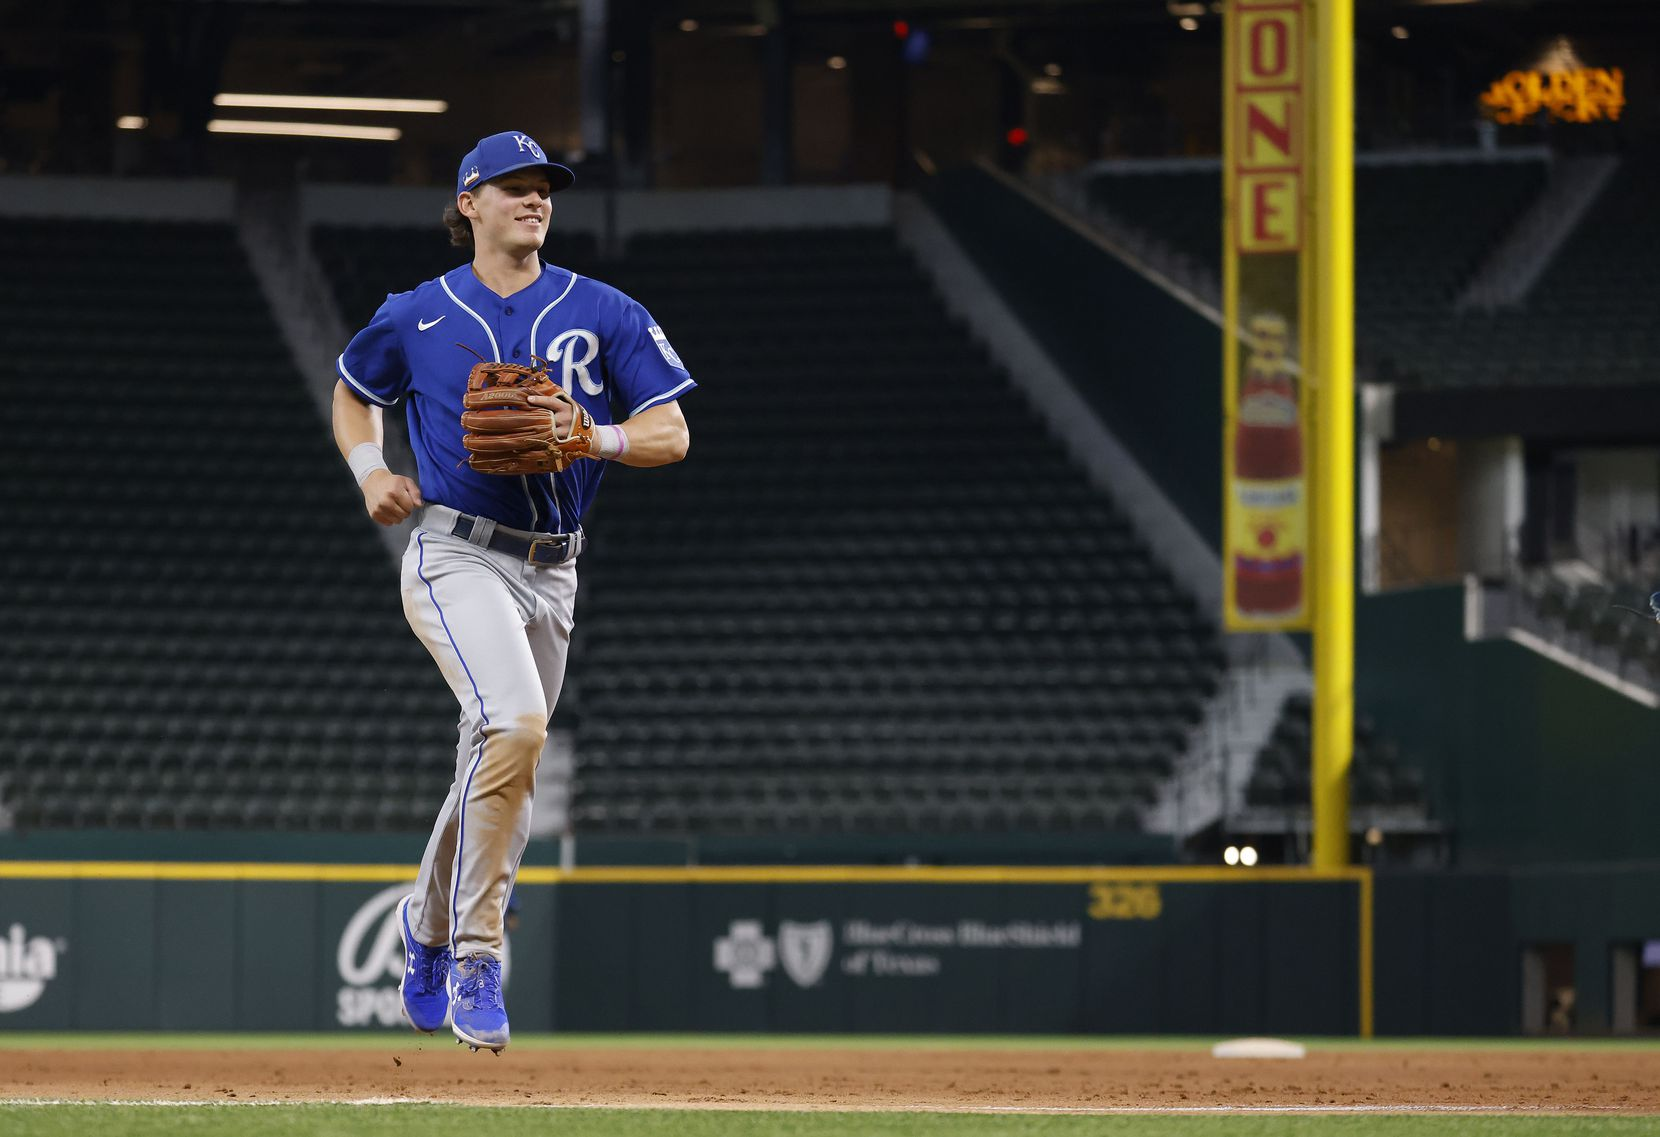 Former Colleyville Heritage shortstop Bobby Witt Jr., the No. 2 overall pick in the 2019 draft, jogs off the field after facing the Texas Rangers minor leaguer.